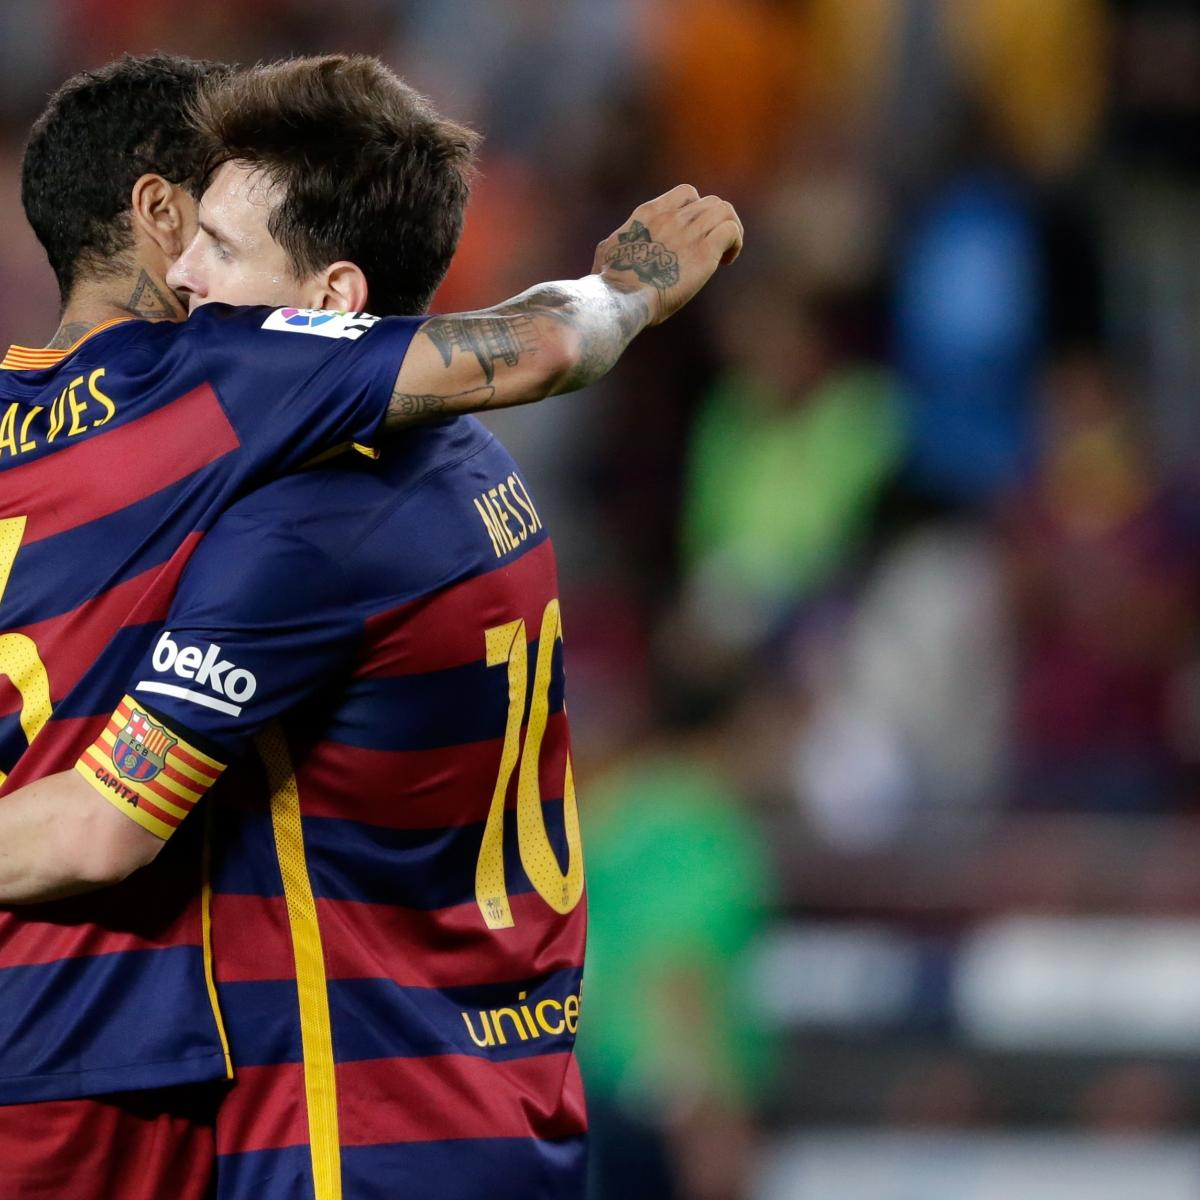 Celta Vigo Vs Barcelona Direct: Celta Vigo Vs. Barcelona: Live Score, Highlights From La